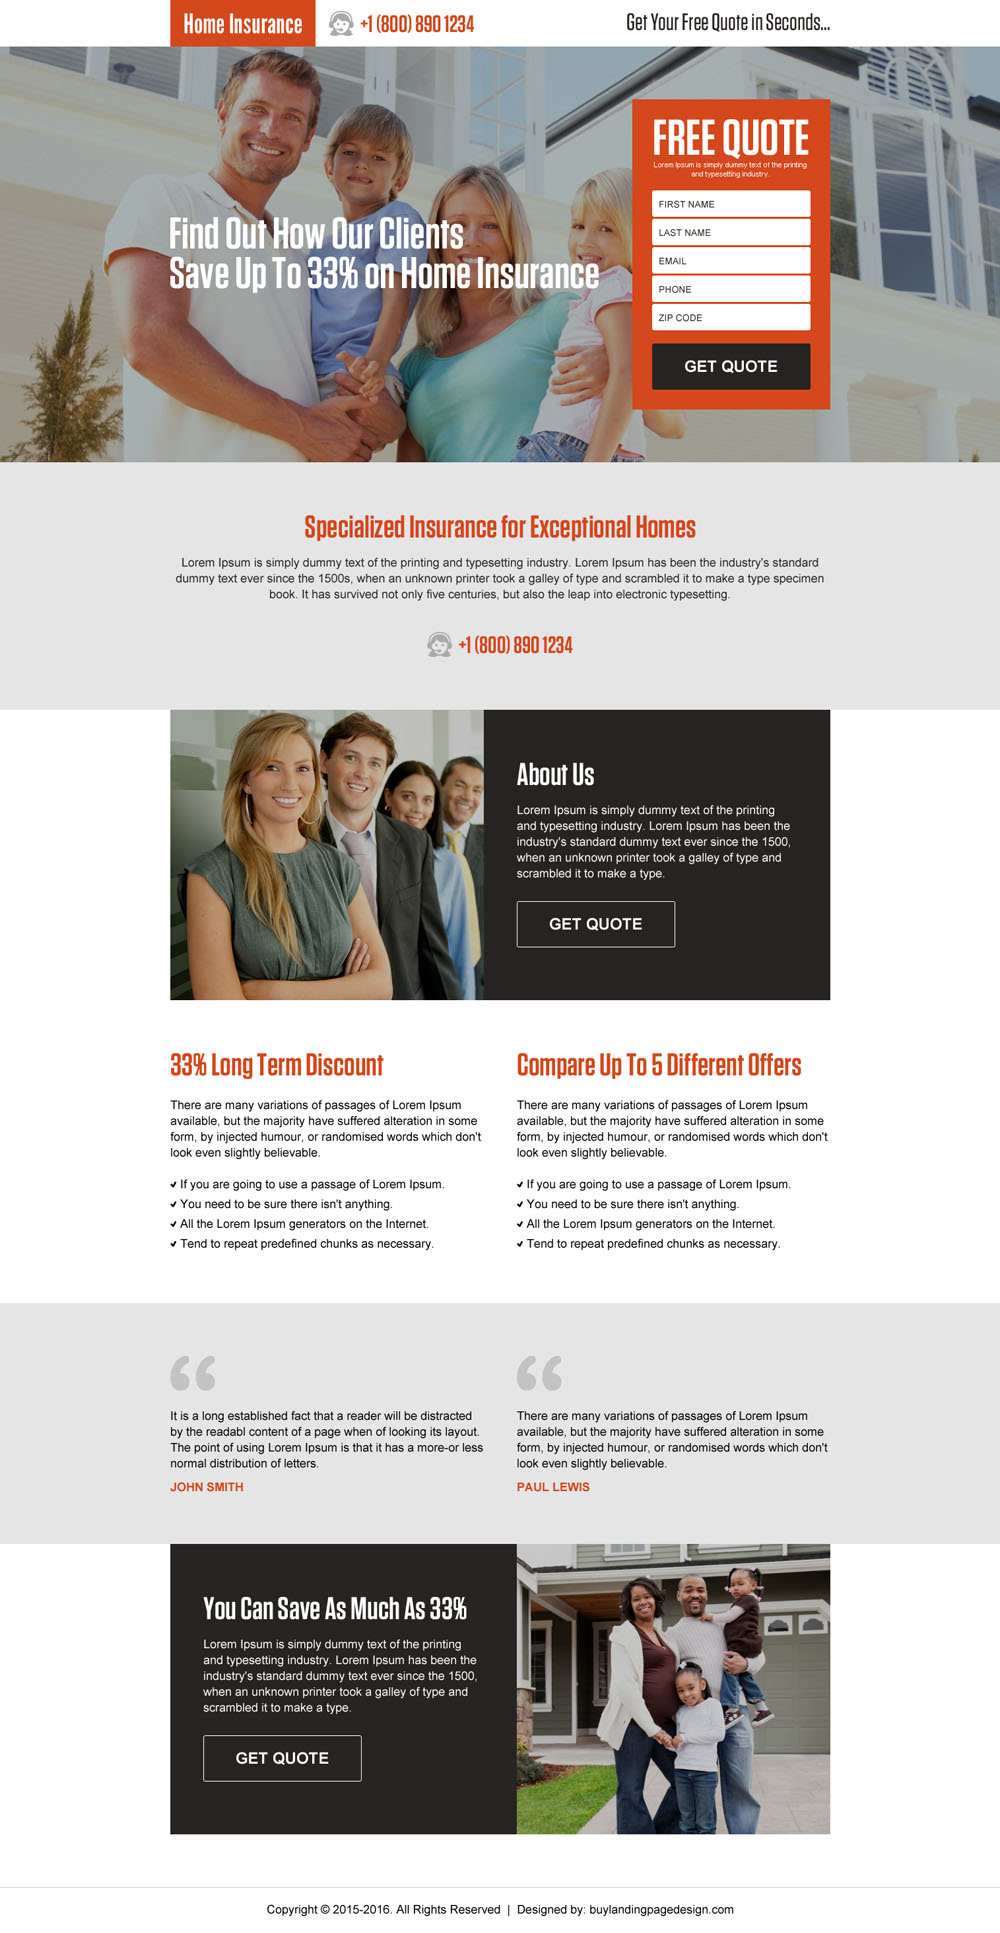 money-saving-home-insurance-free-quote-lead-gen-converting-landing-page-design-027